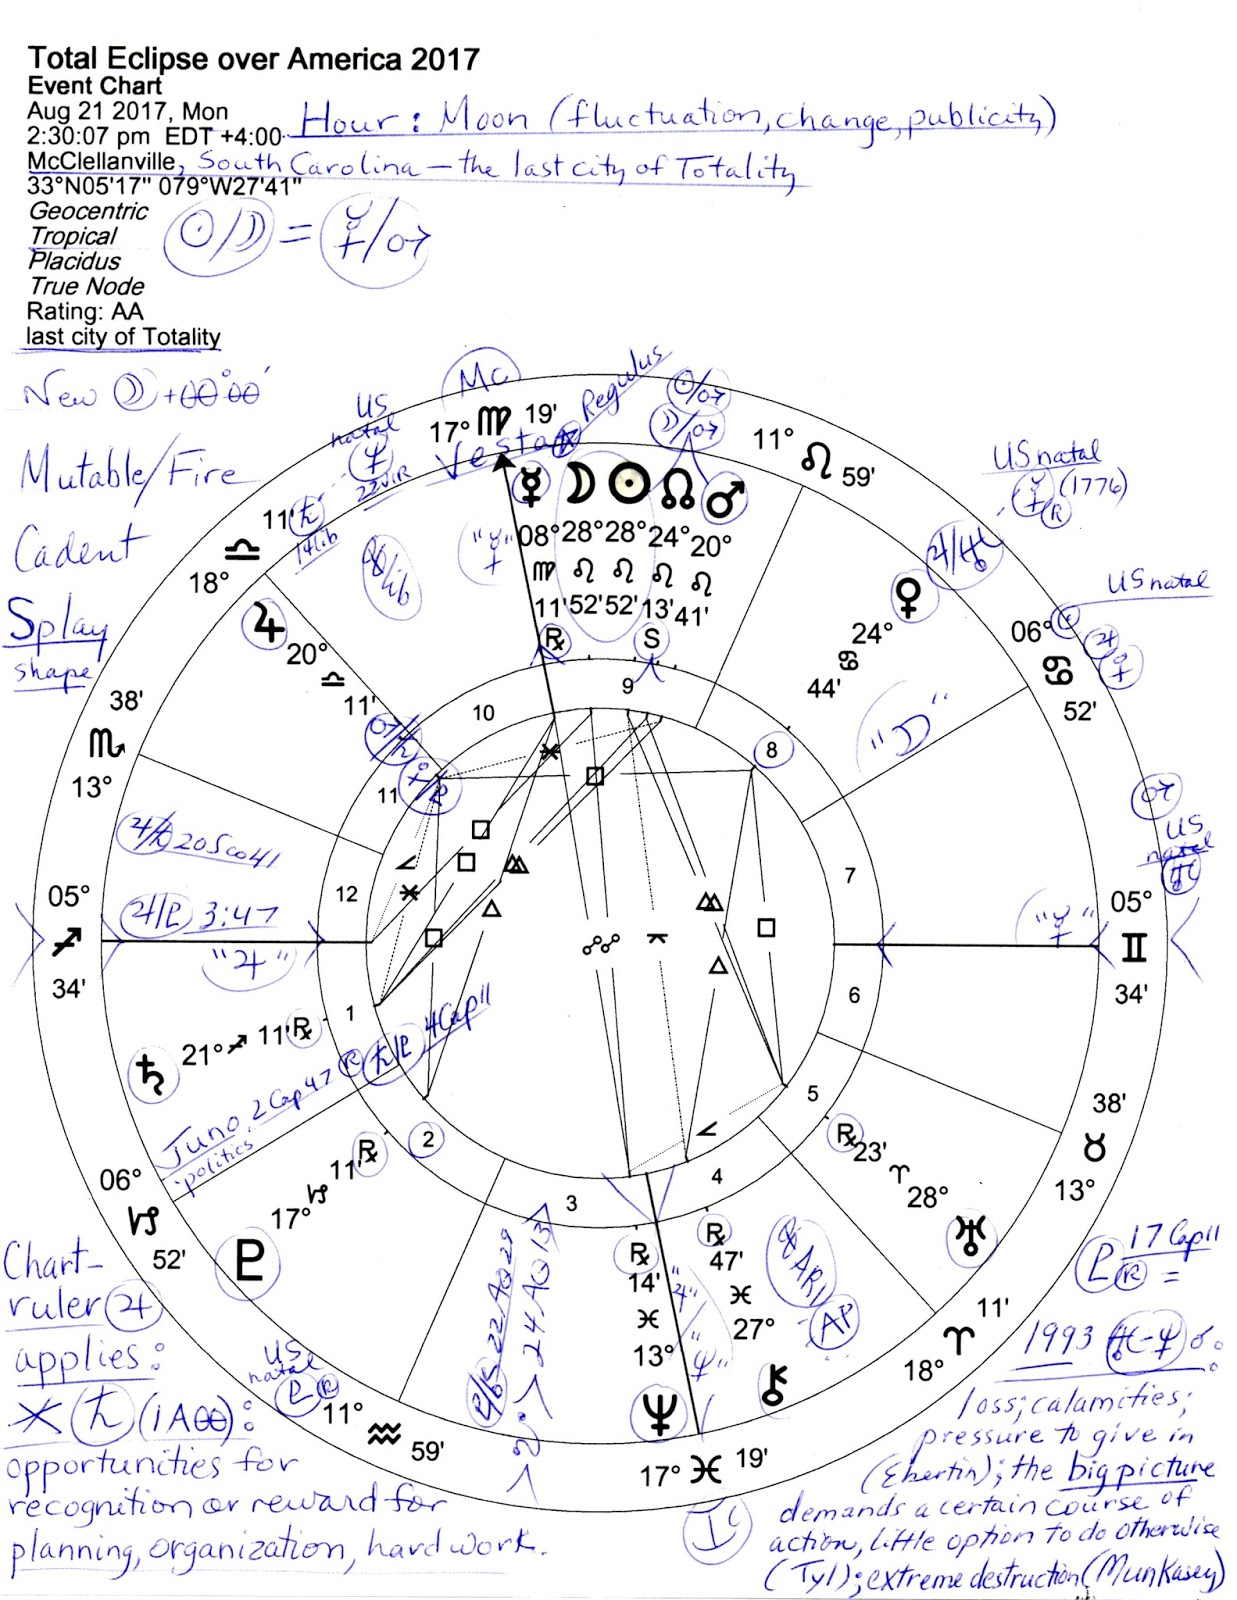 Now For A Bit Of Context Here Is Link To Recent Post In Which I List The August 2017 Eclipse With Details And Solar Eclipses That Lead Up